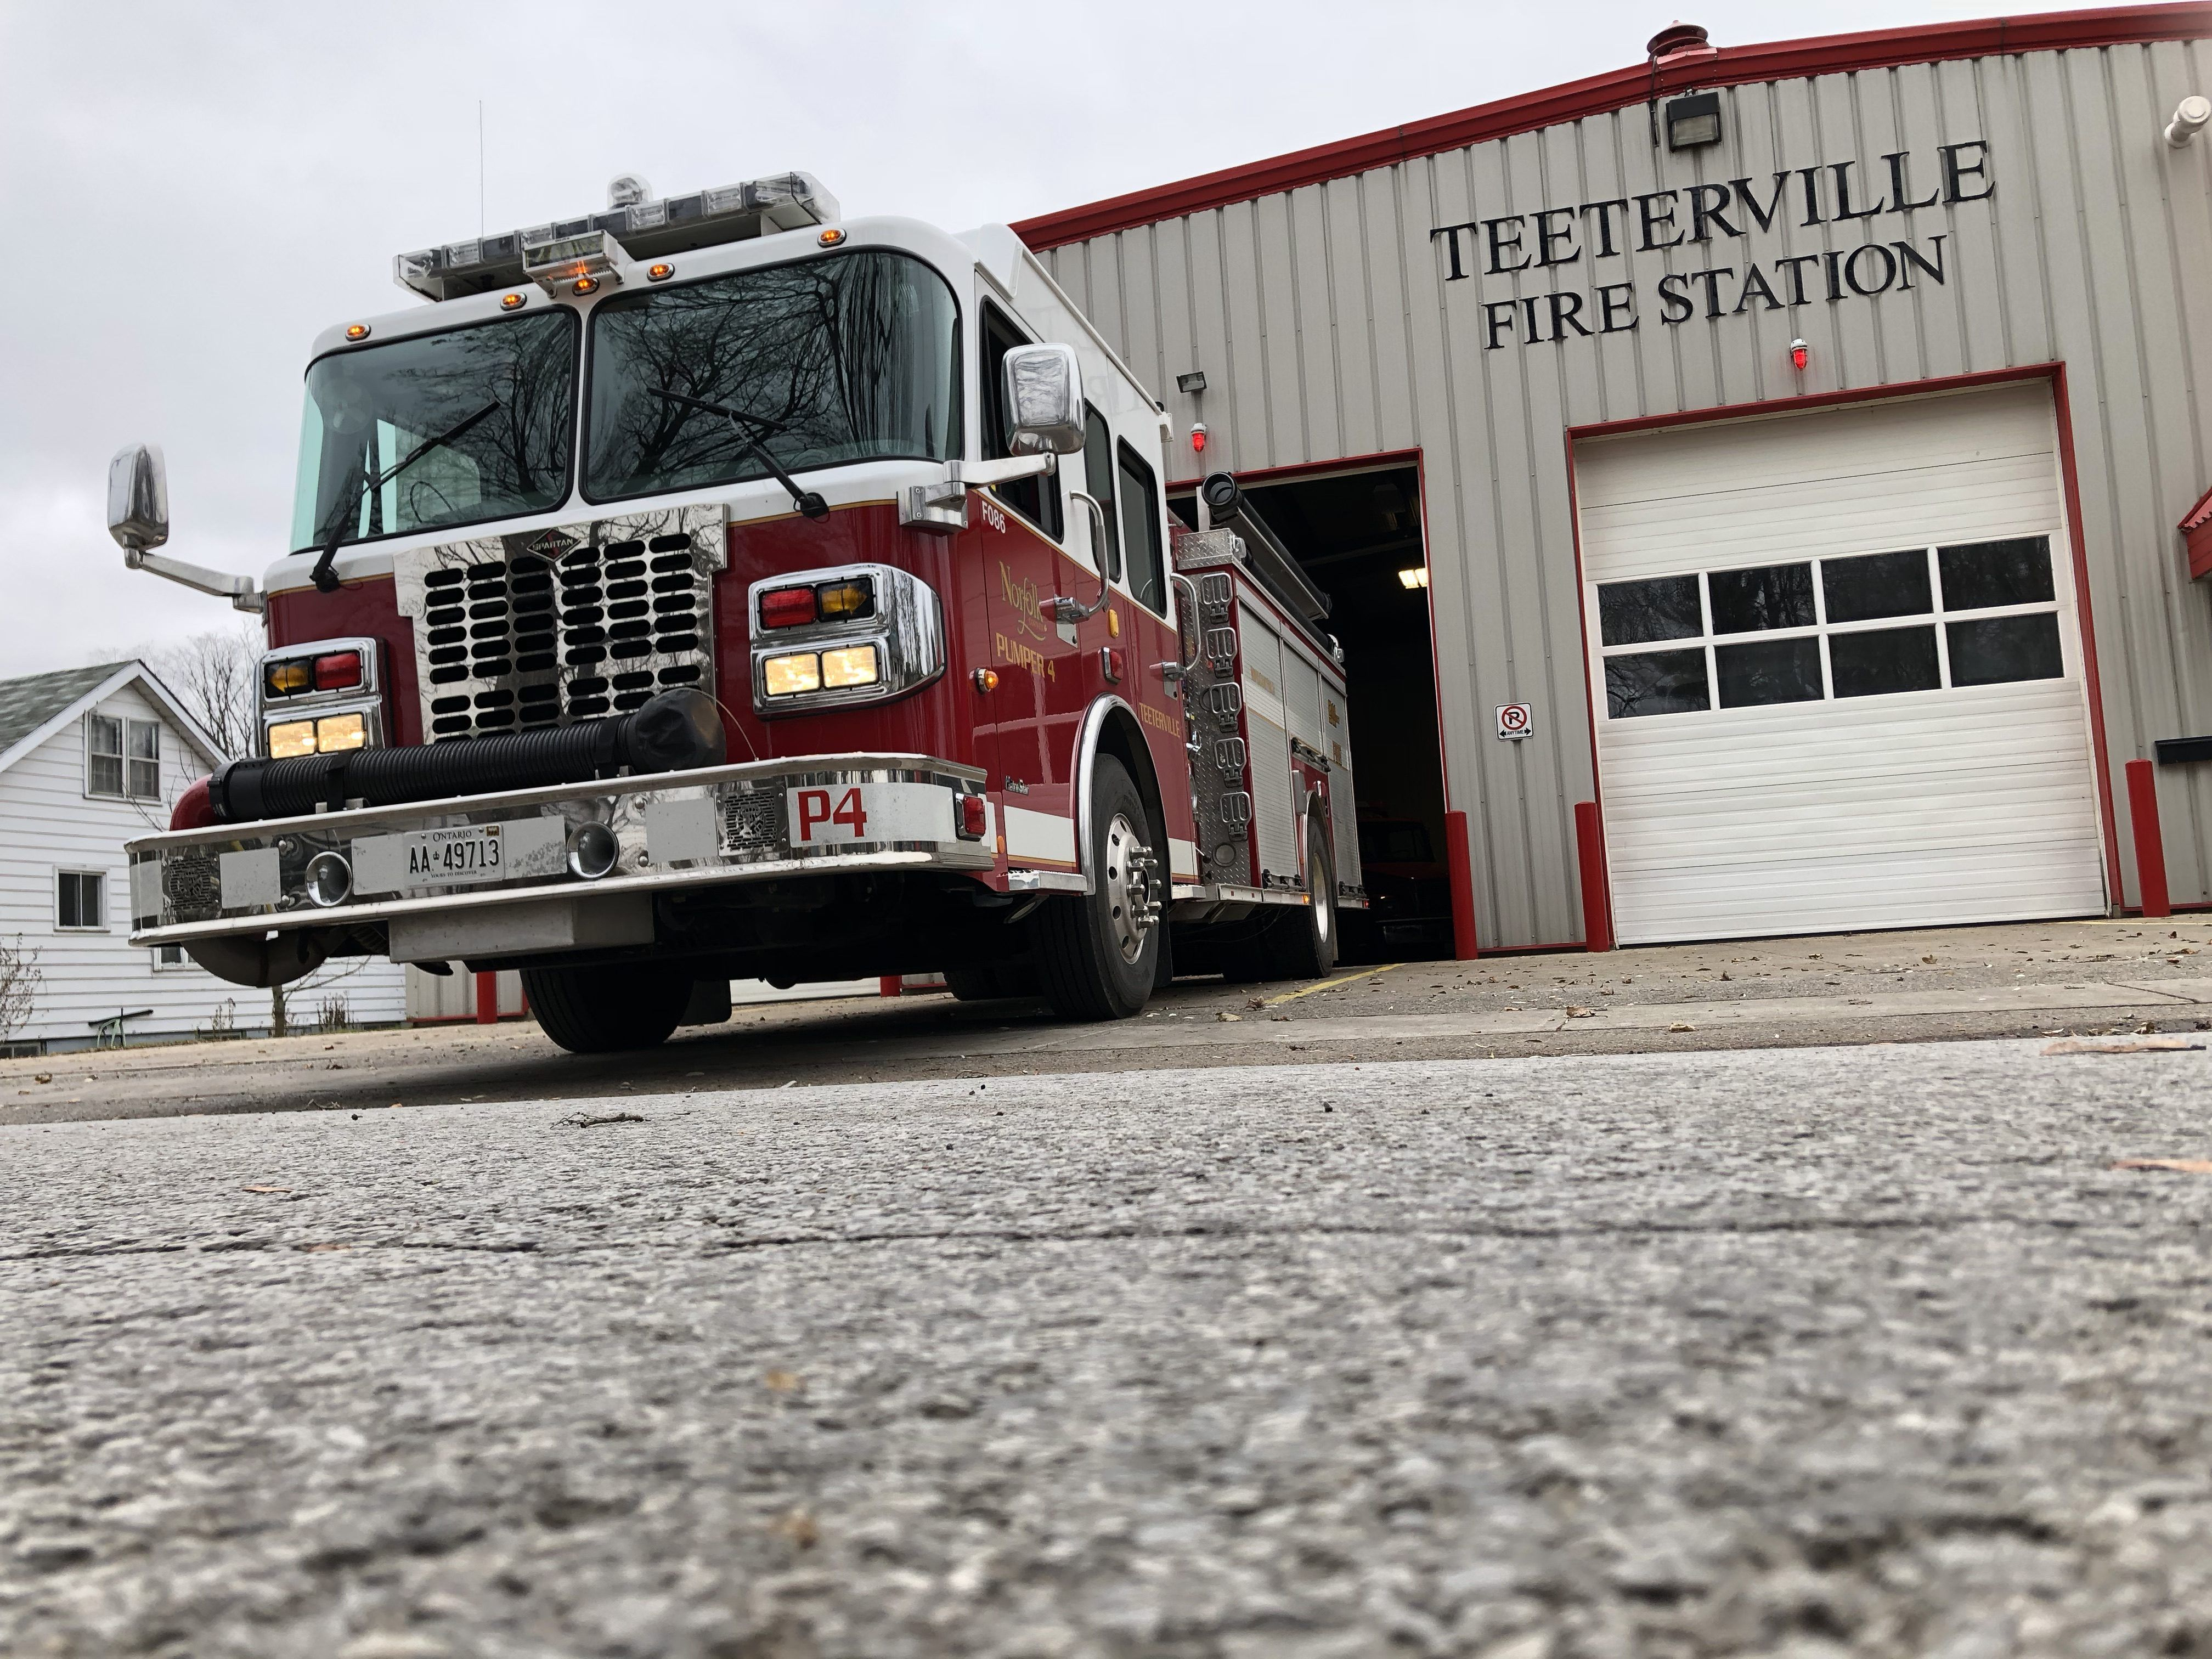 Station 4 Fire Trucks